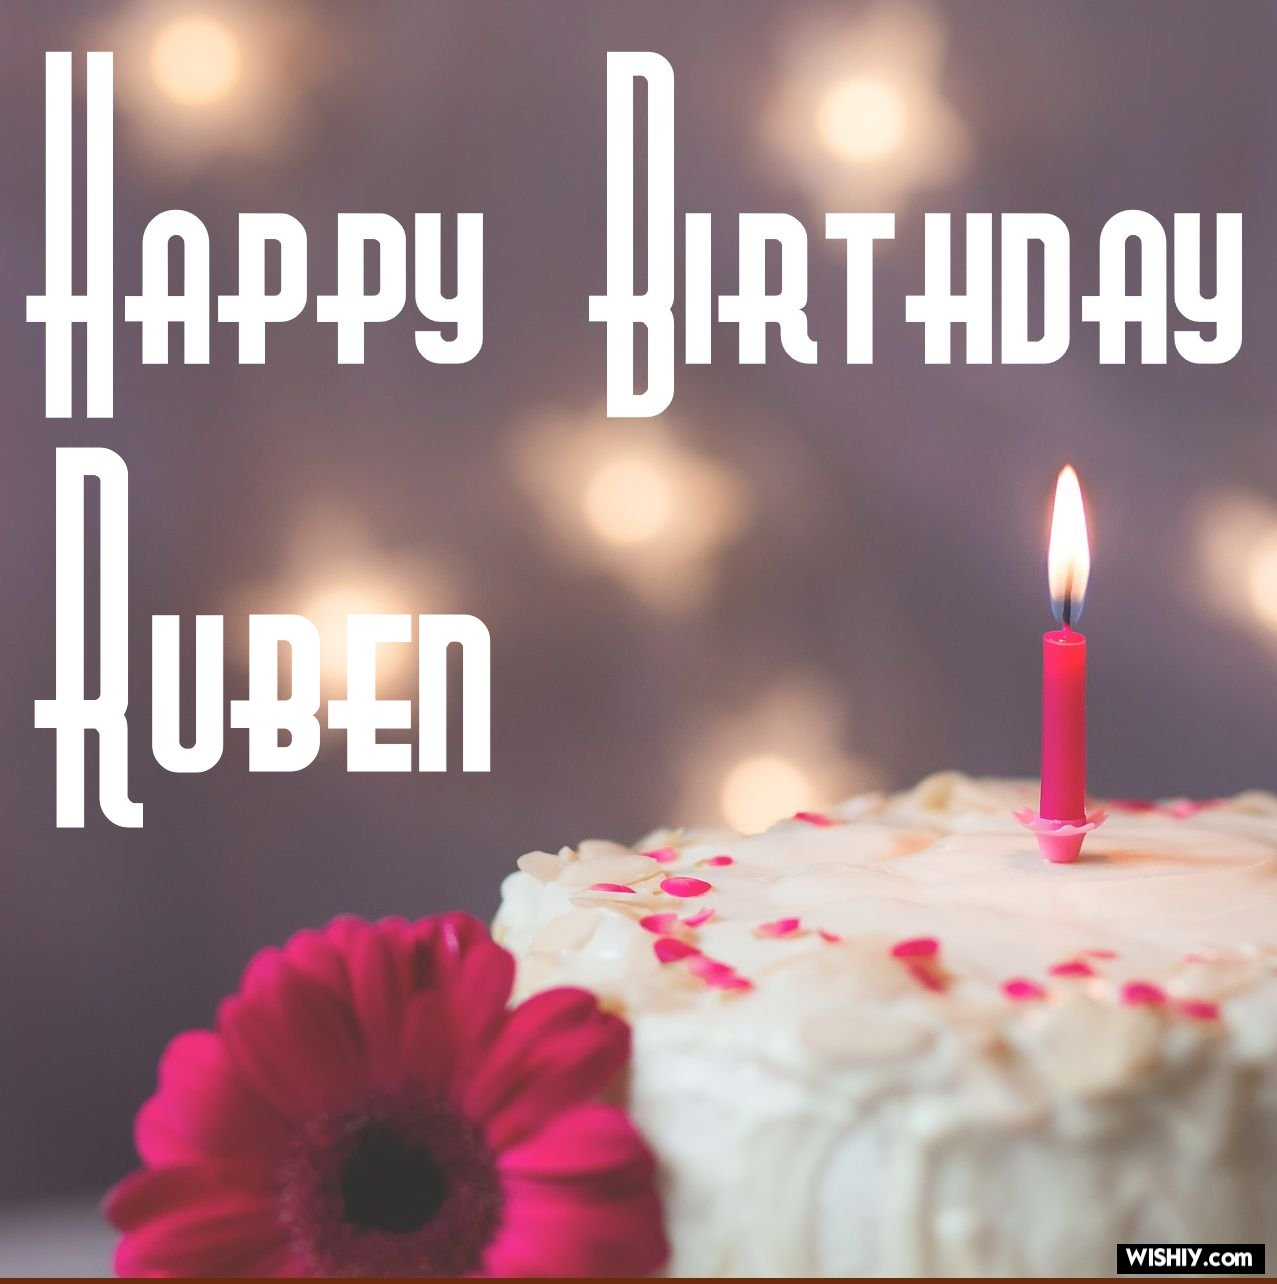 50 Best Birthday Images For Ruben Instant Download 2021